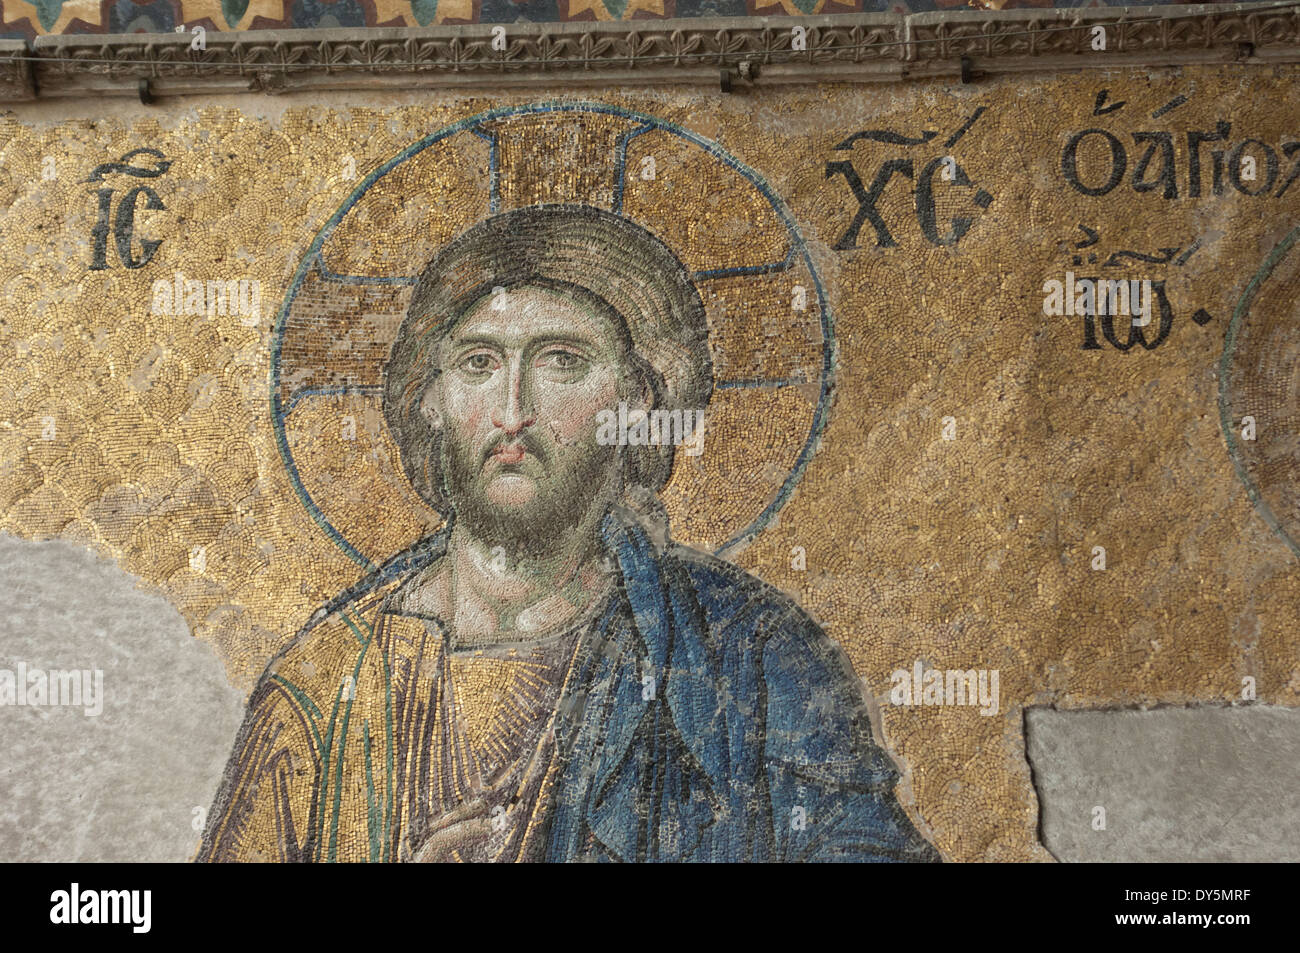 Byzantine mosaic of Jesus in the Hagia Sophia, Istanbul. Digital photograph - Stock Image